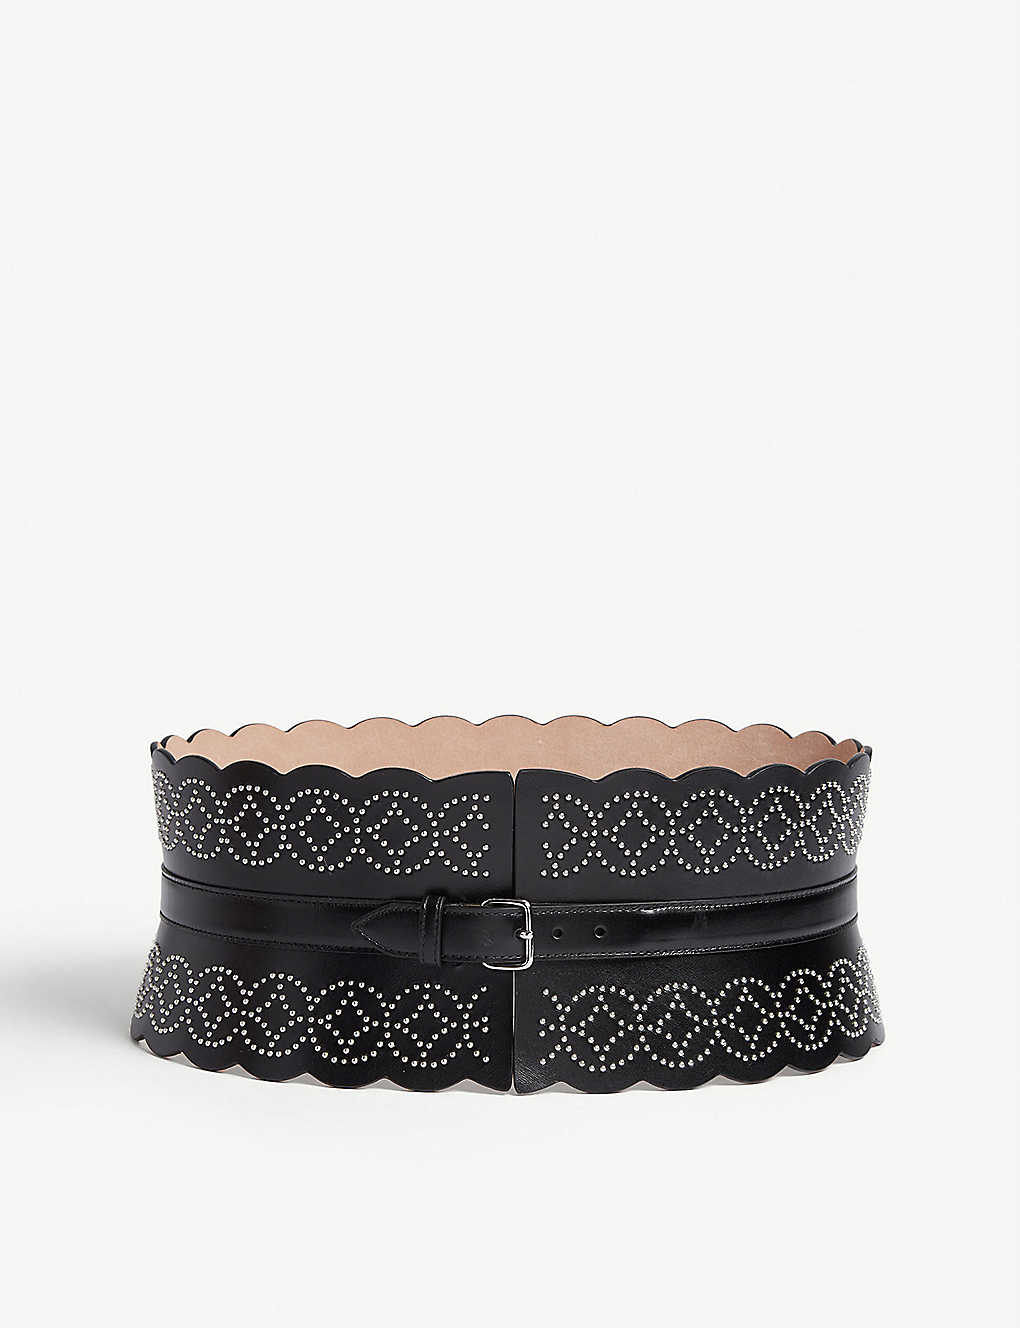 AZZEDINE ALAIA: Studded leather corset belt